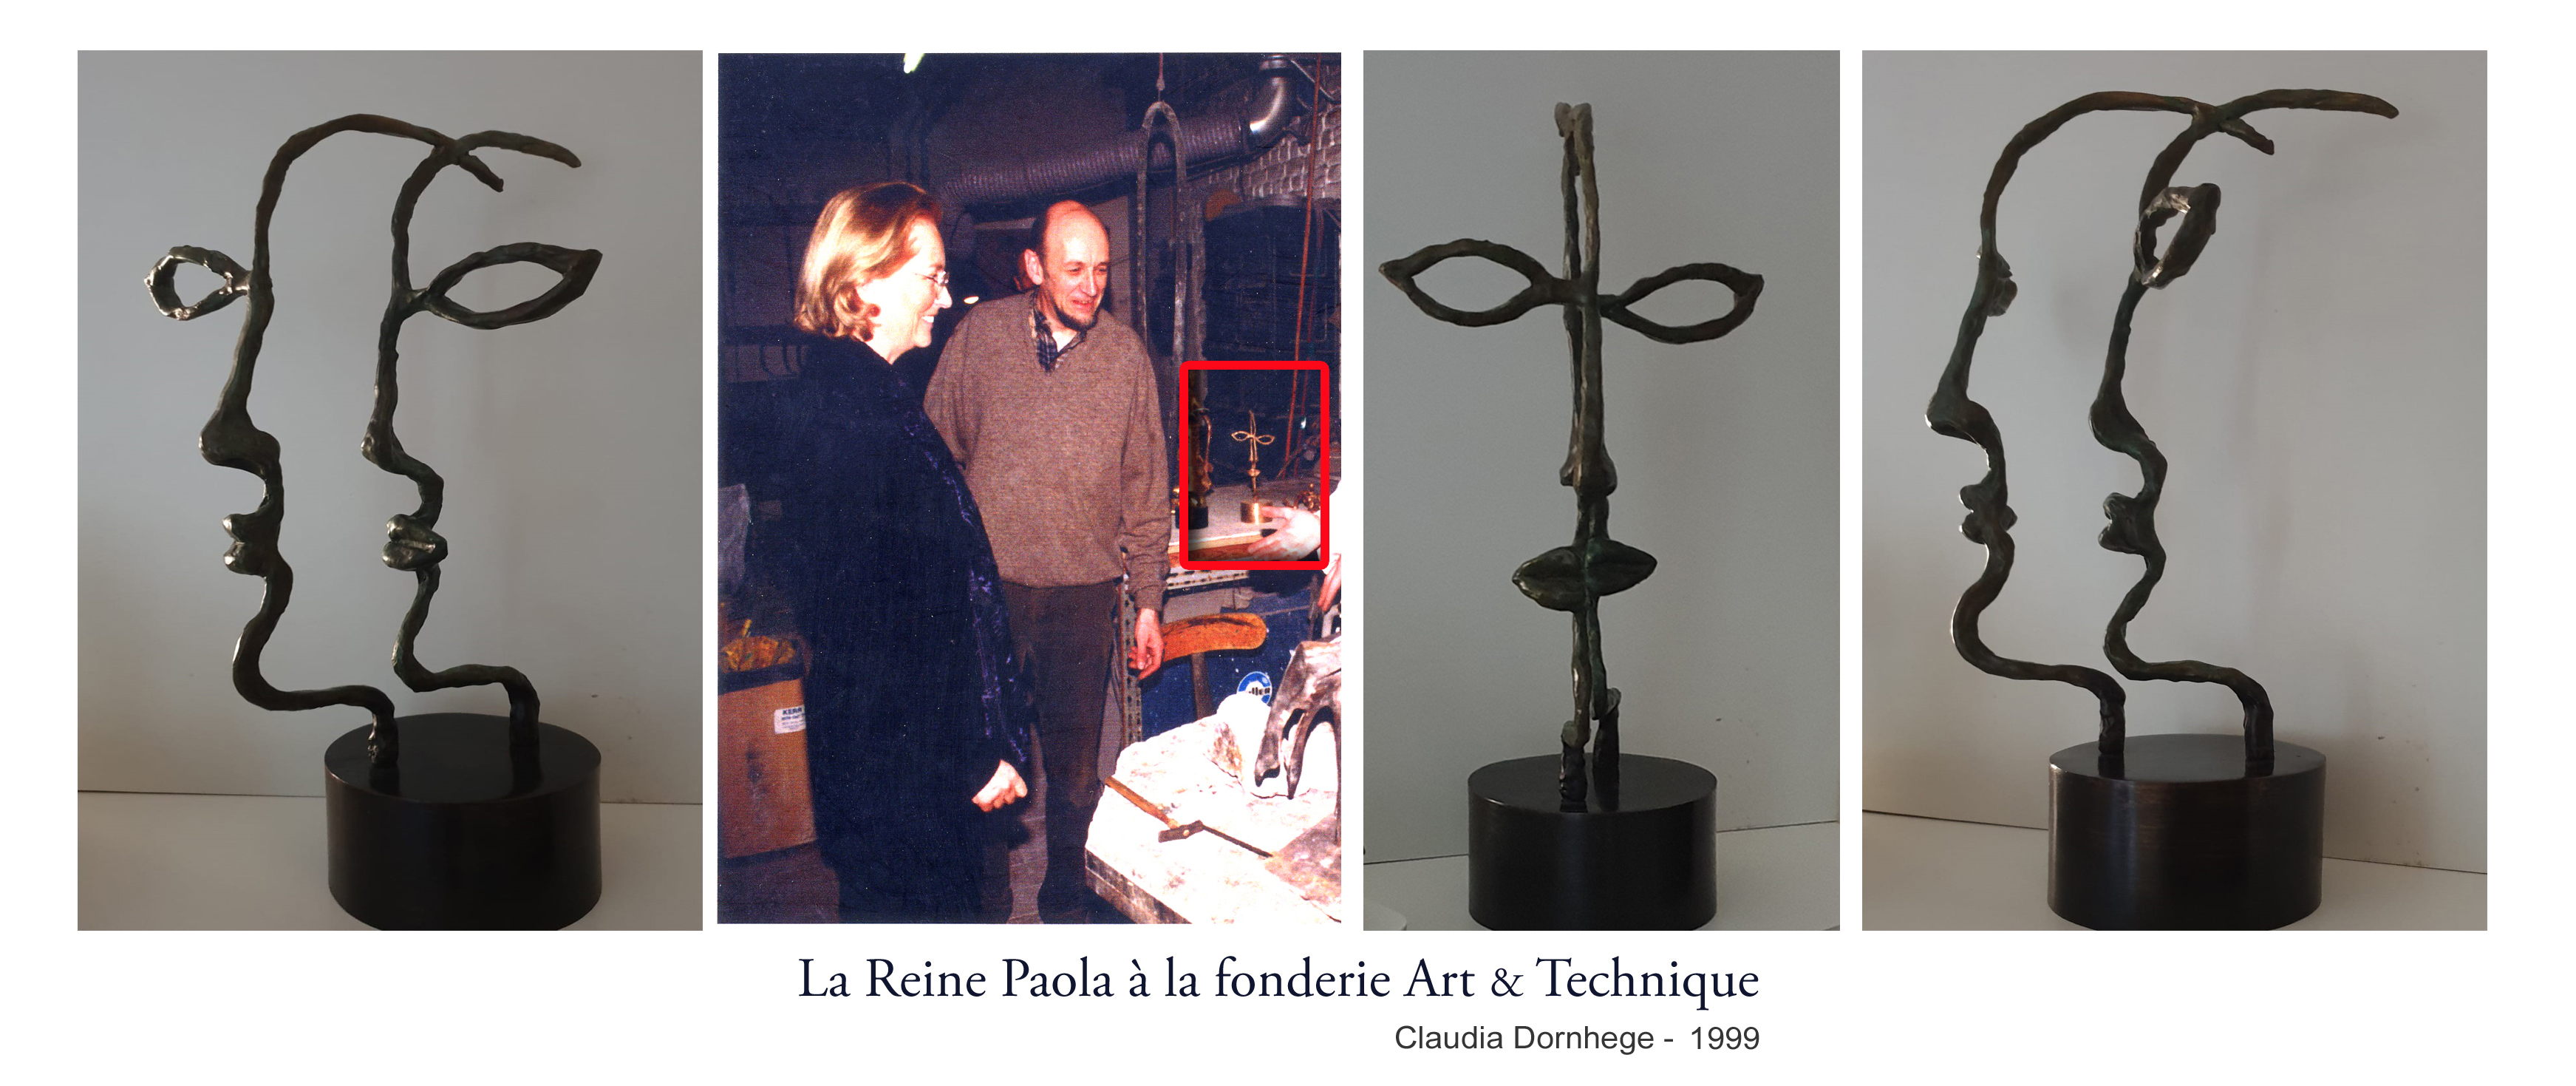 Reine Paola - Fonderie Art & Technique - Claudia Dornhege 1999